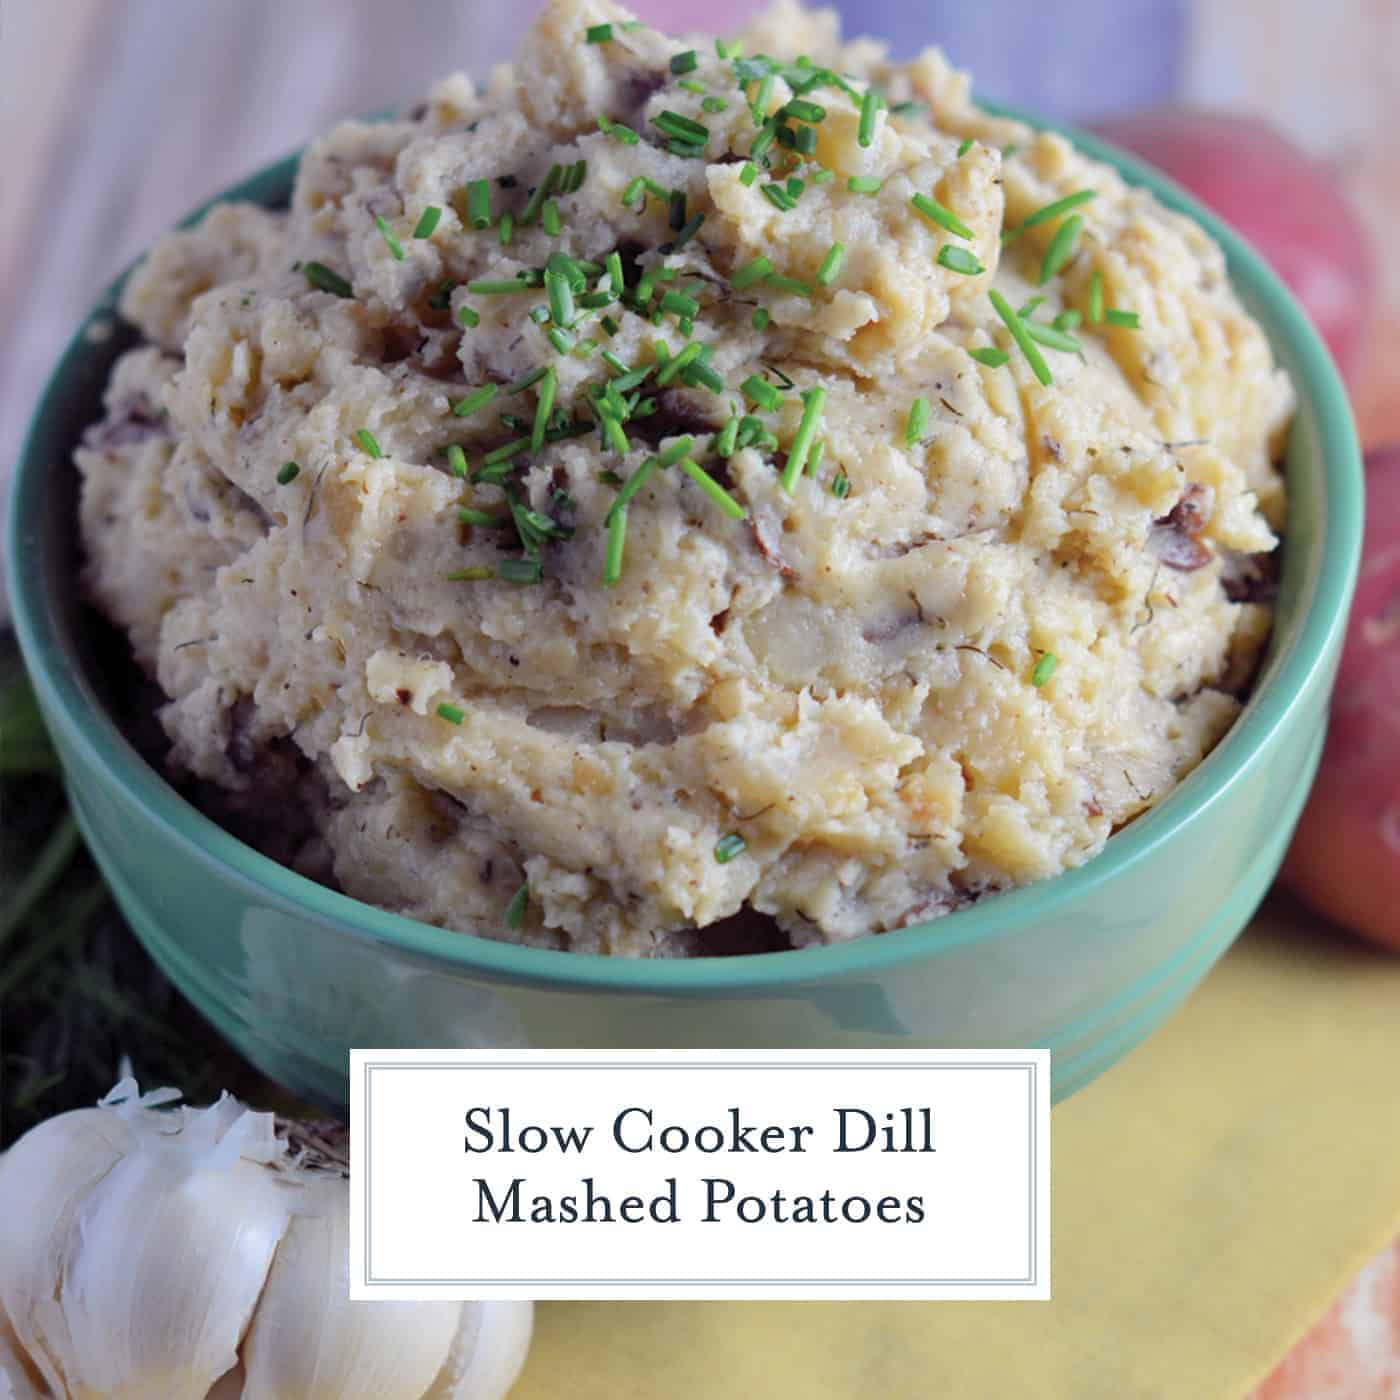 Slow Cooker Garlic Dill Mashed Potatoes are creamy, loaded with flavor, and unbelievably easy when made in the crock pot! #slowcookermashedpotatoes #crockpotmashedpotatoes #homemademashedpotatoes #garlicdillmashedpotatoes www.savoryexperiments.com